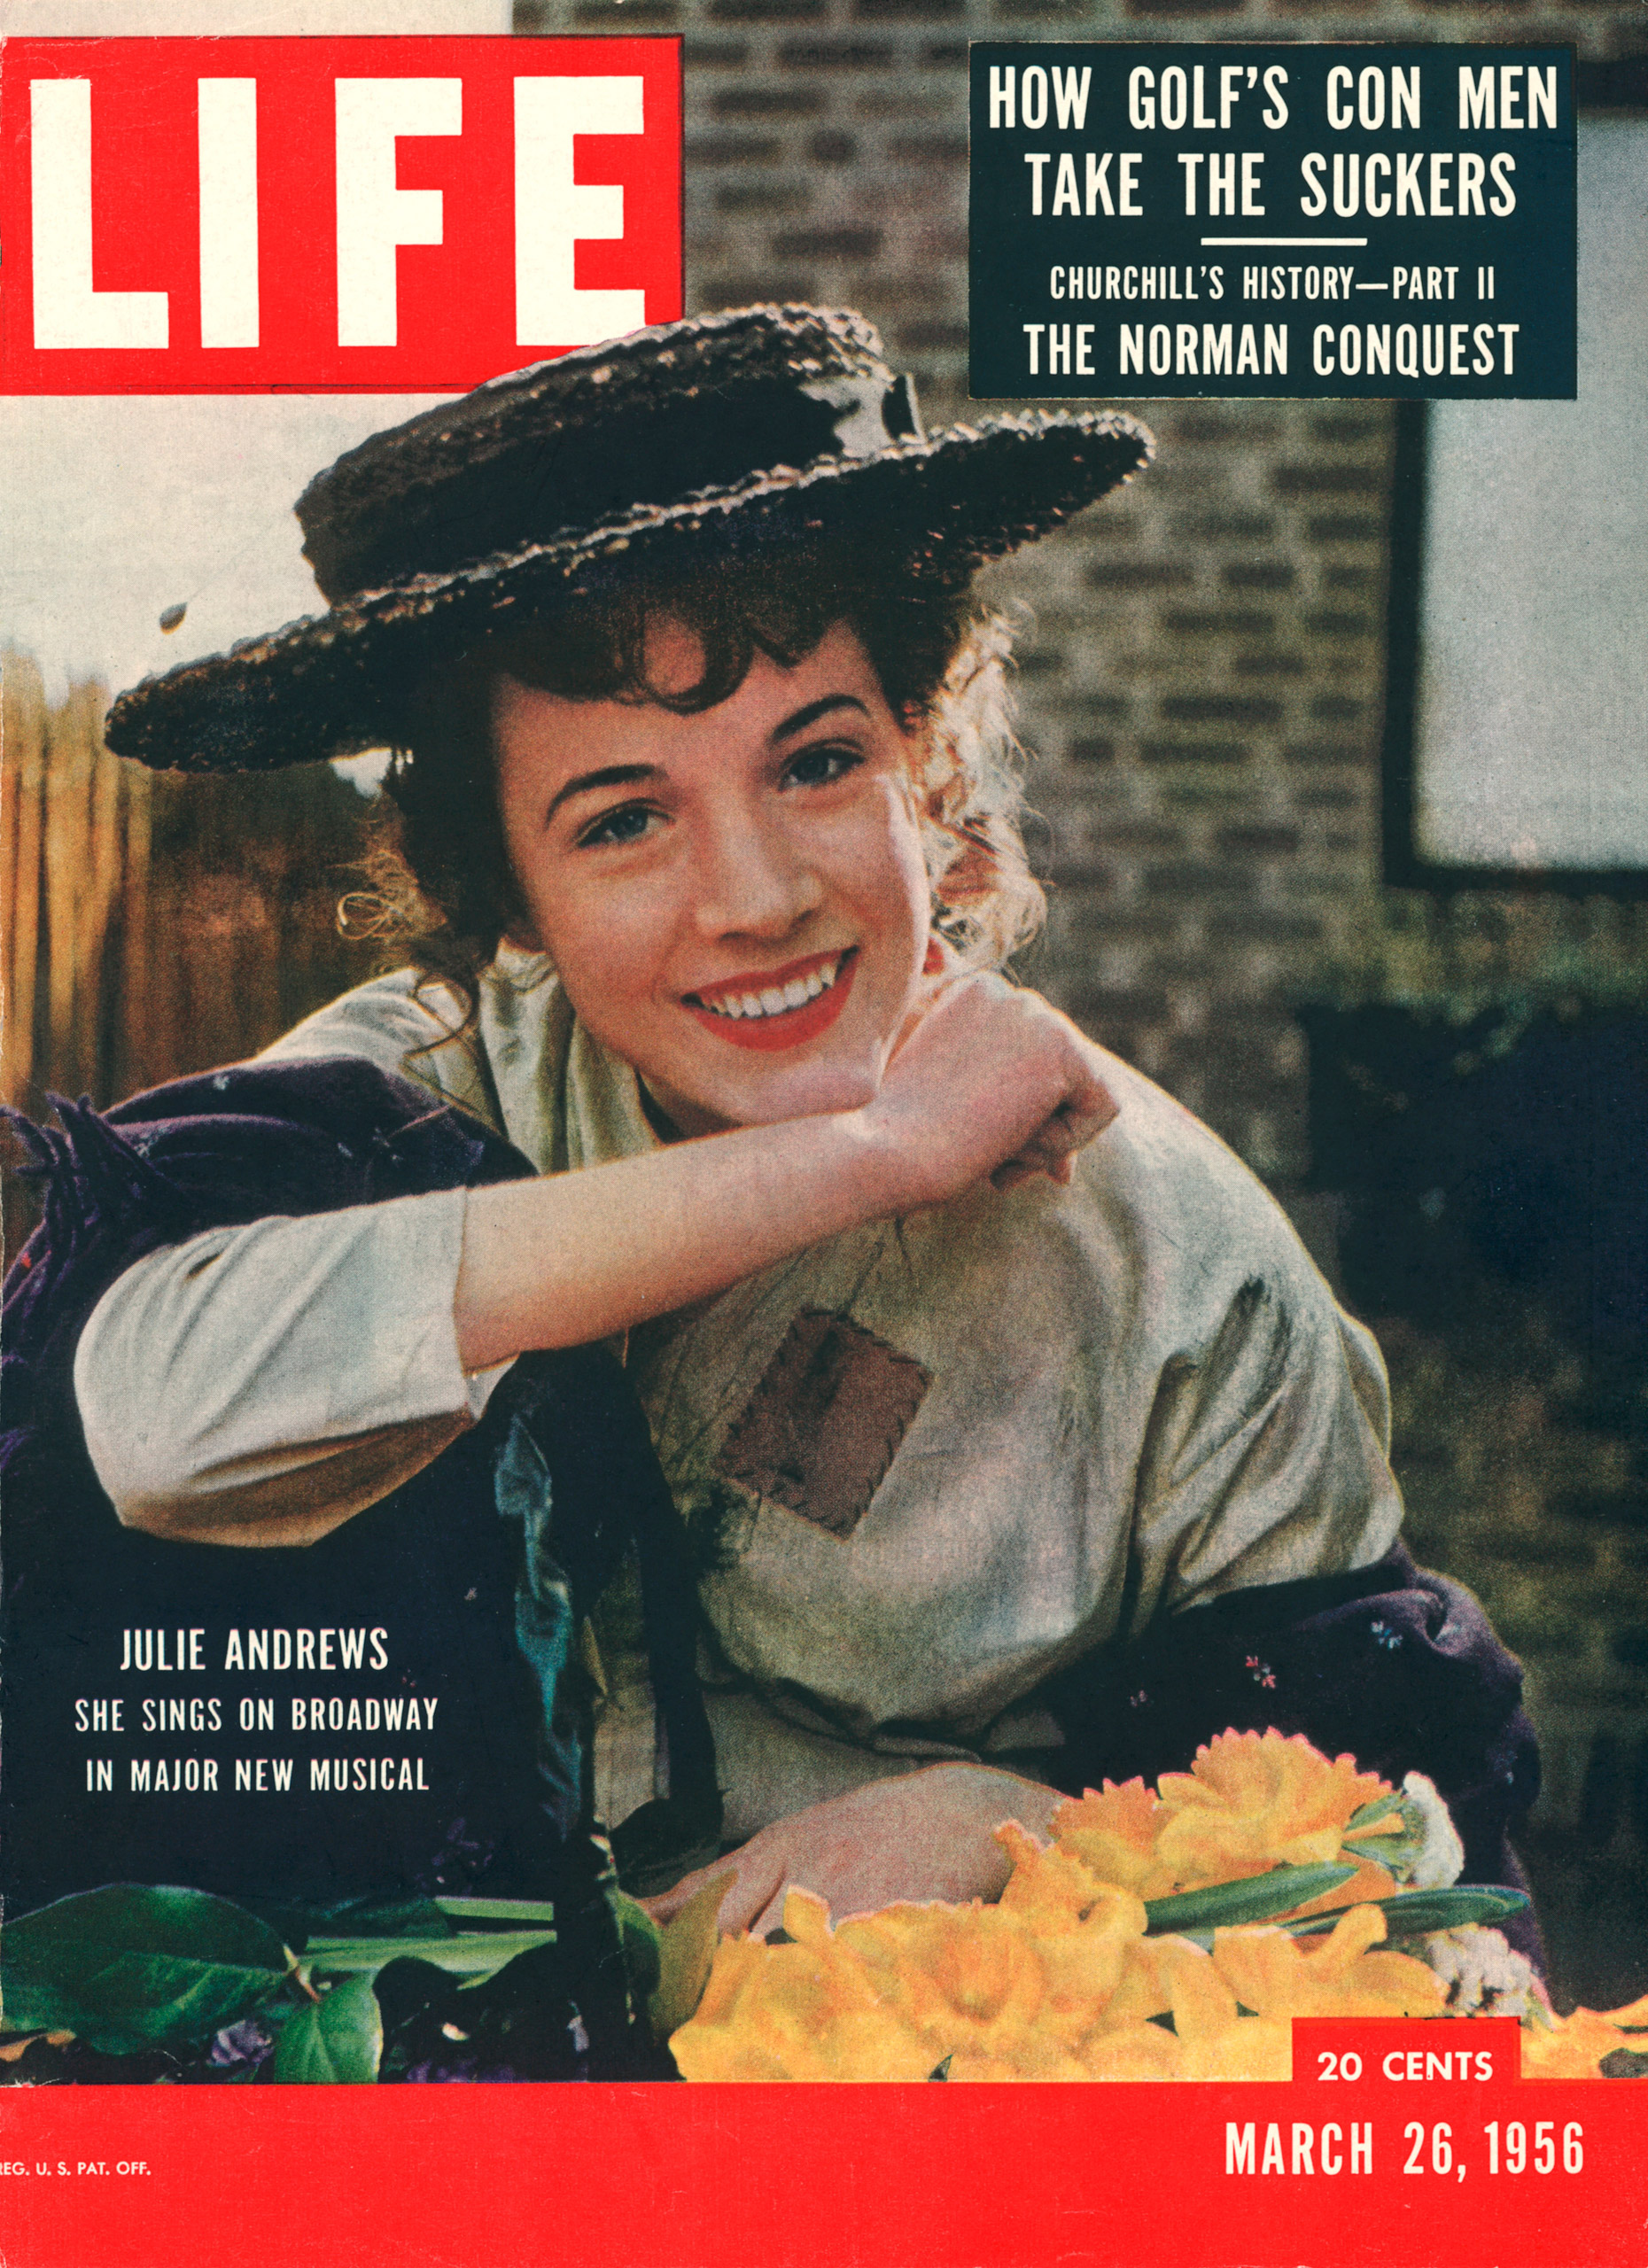 March 26, 1956 cover of LIFE magazine.